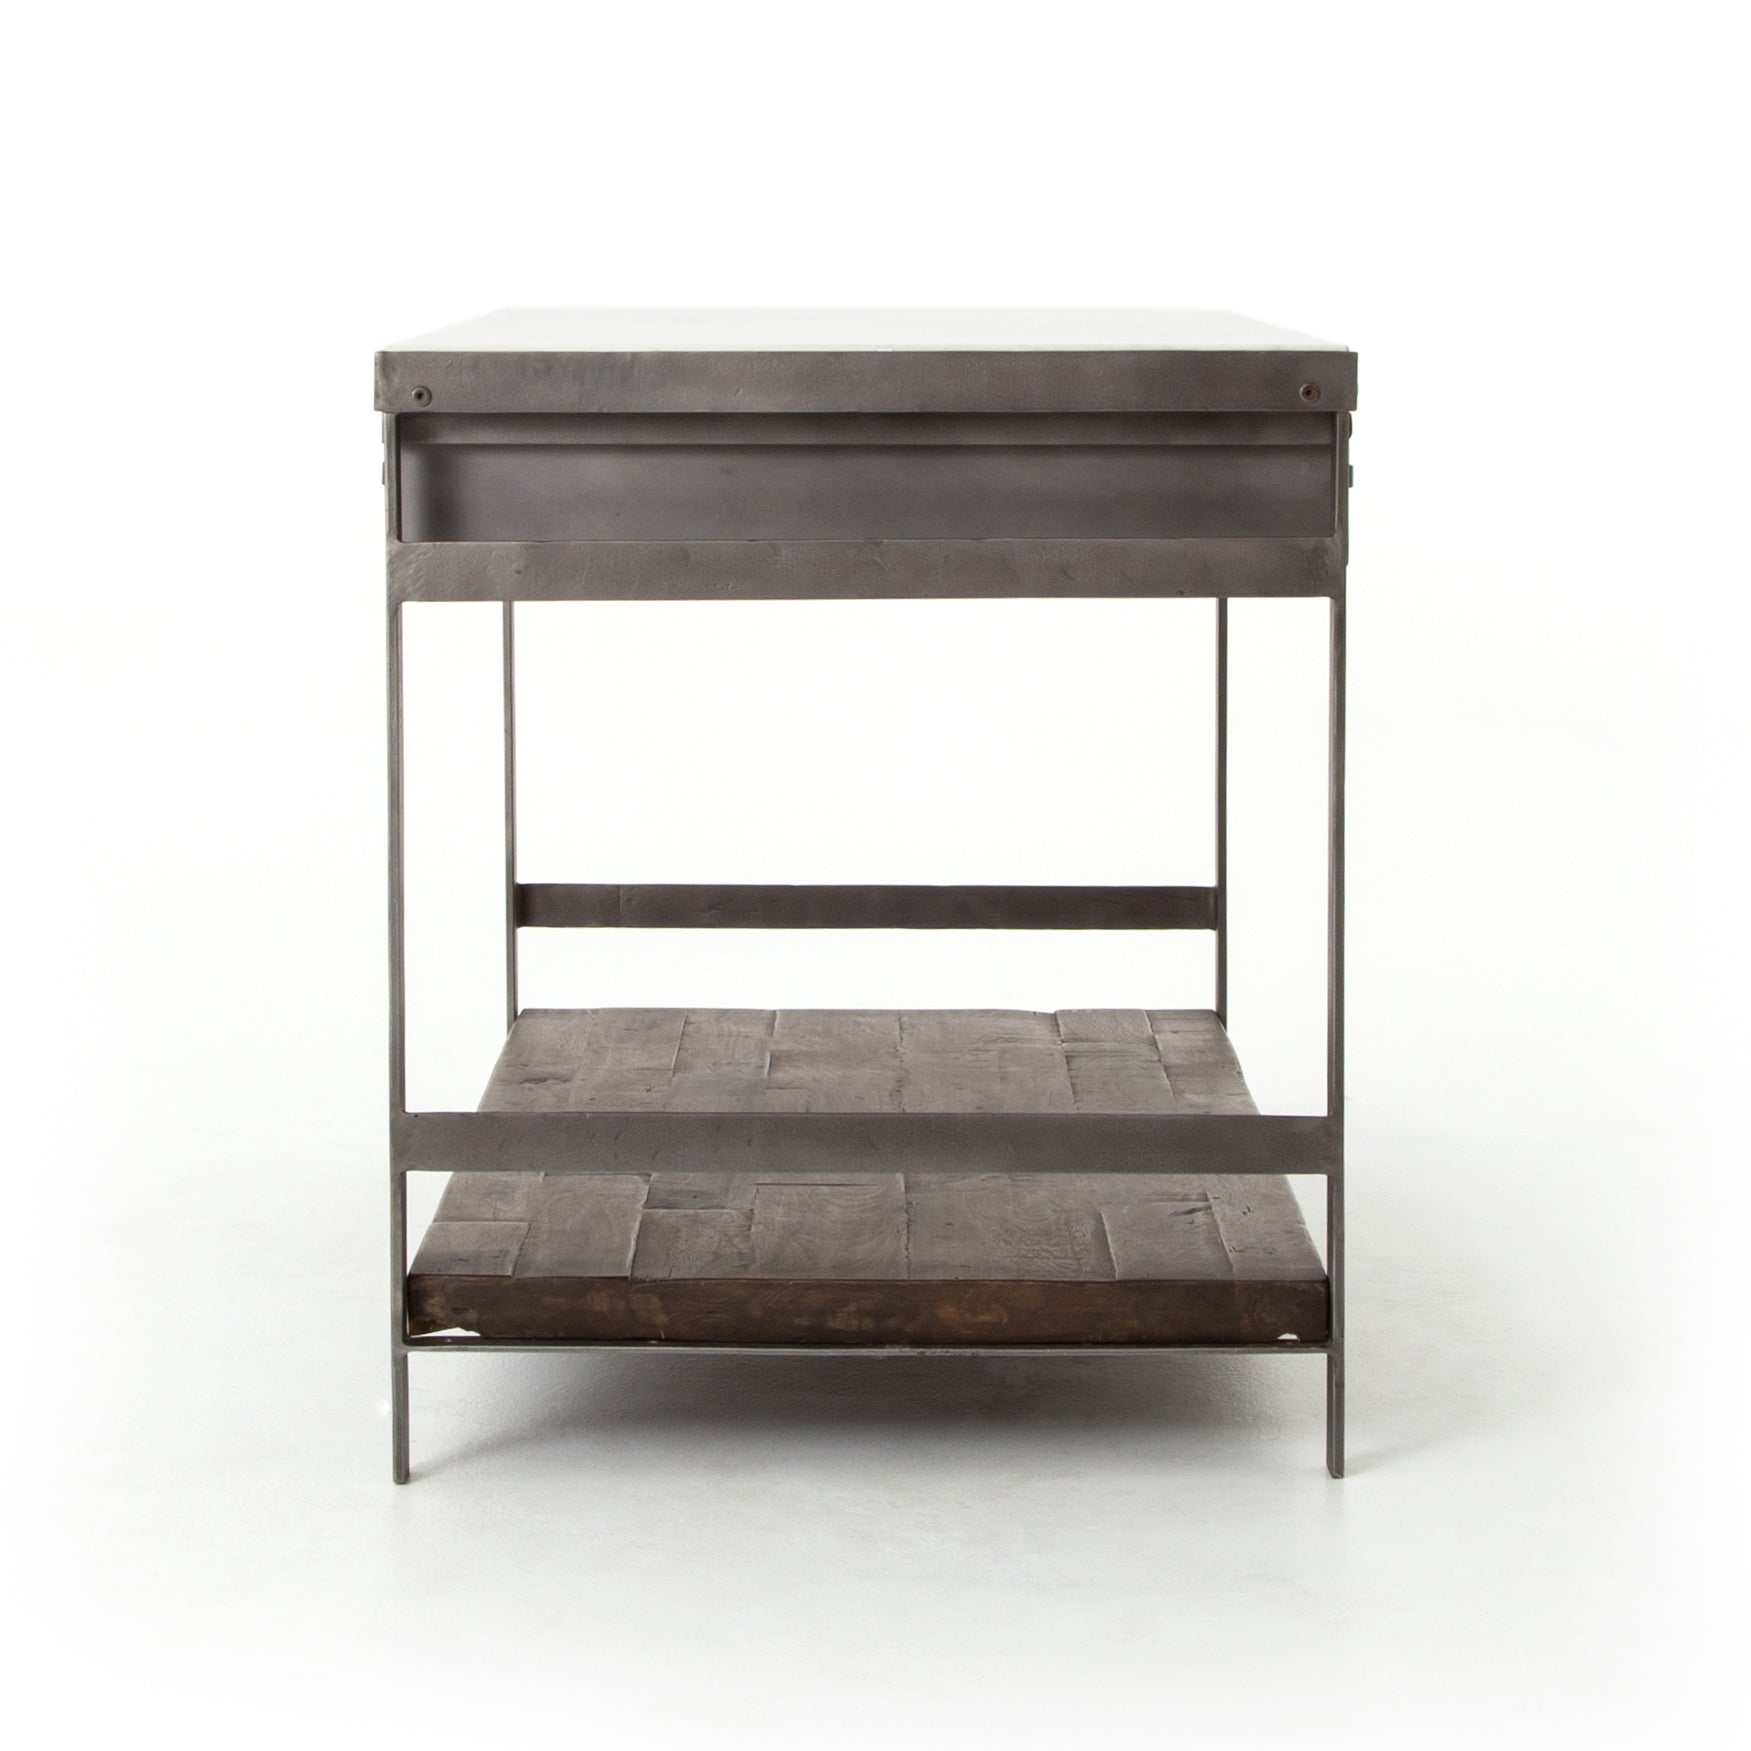 Farmhouse Open Storage Kitchen Island - Furniture on Main